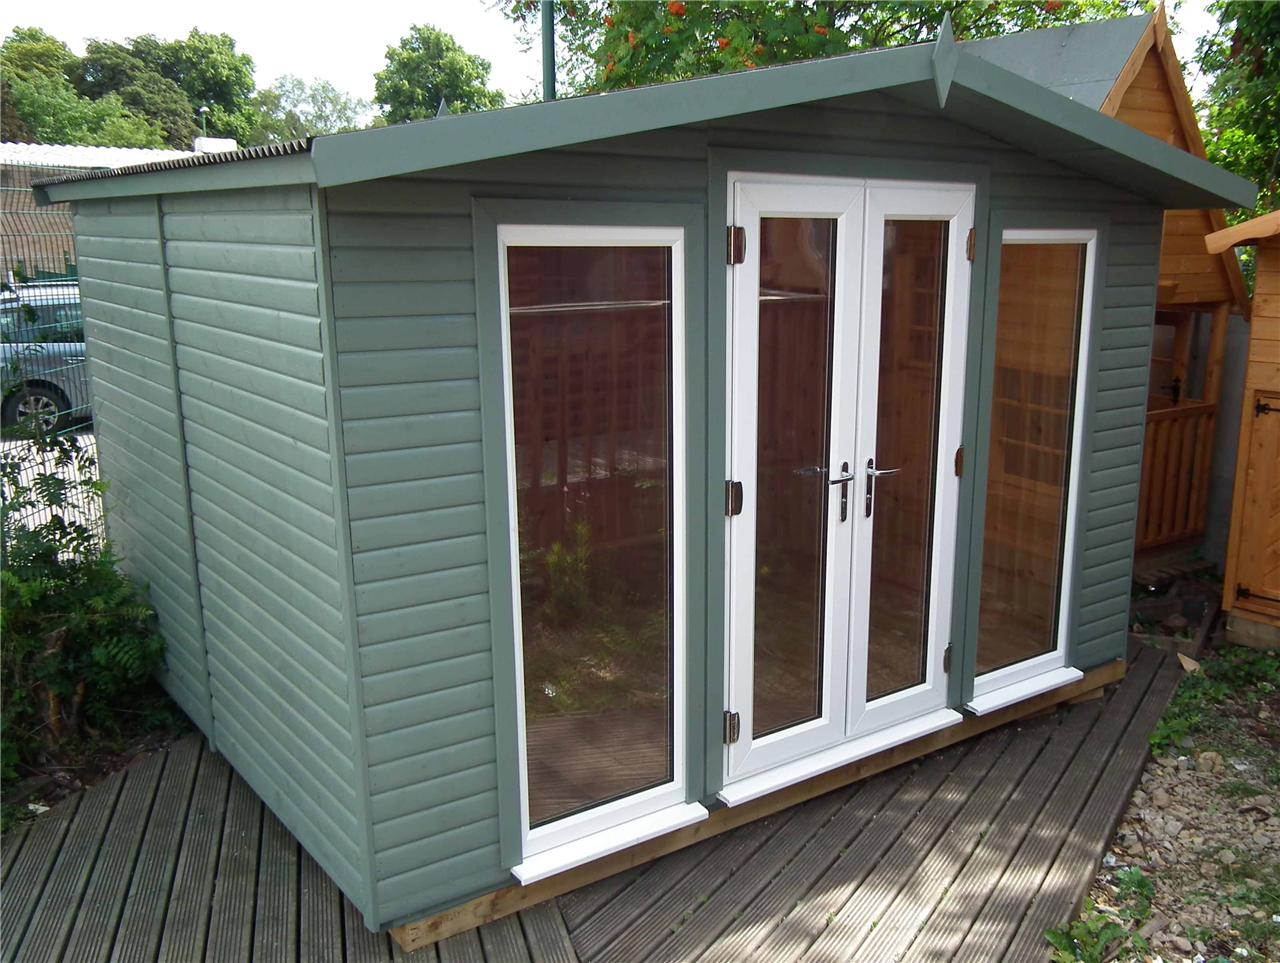 Garden room office wooden cabin insulated log cabin ebay for Log cabin sunrooms